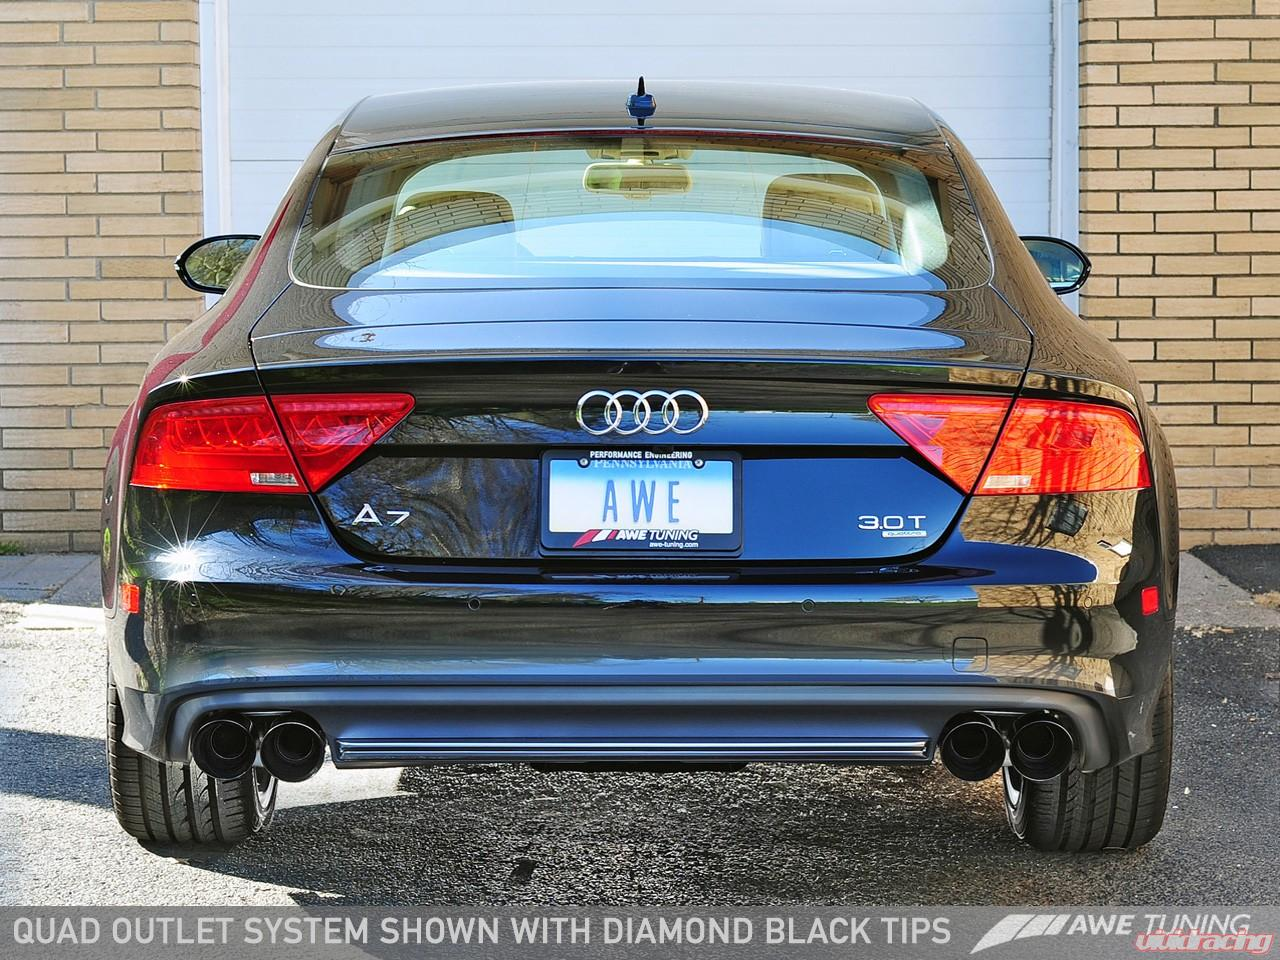 Awe Tuning Touring Edition Exhaust System W Quad Outlet Chrome Silver Tips Audi A7 C7 3 0t 12 15 3015 42074